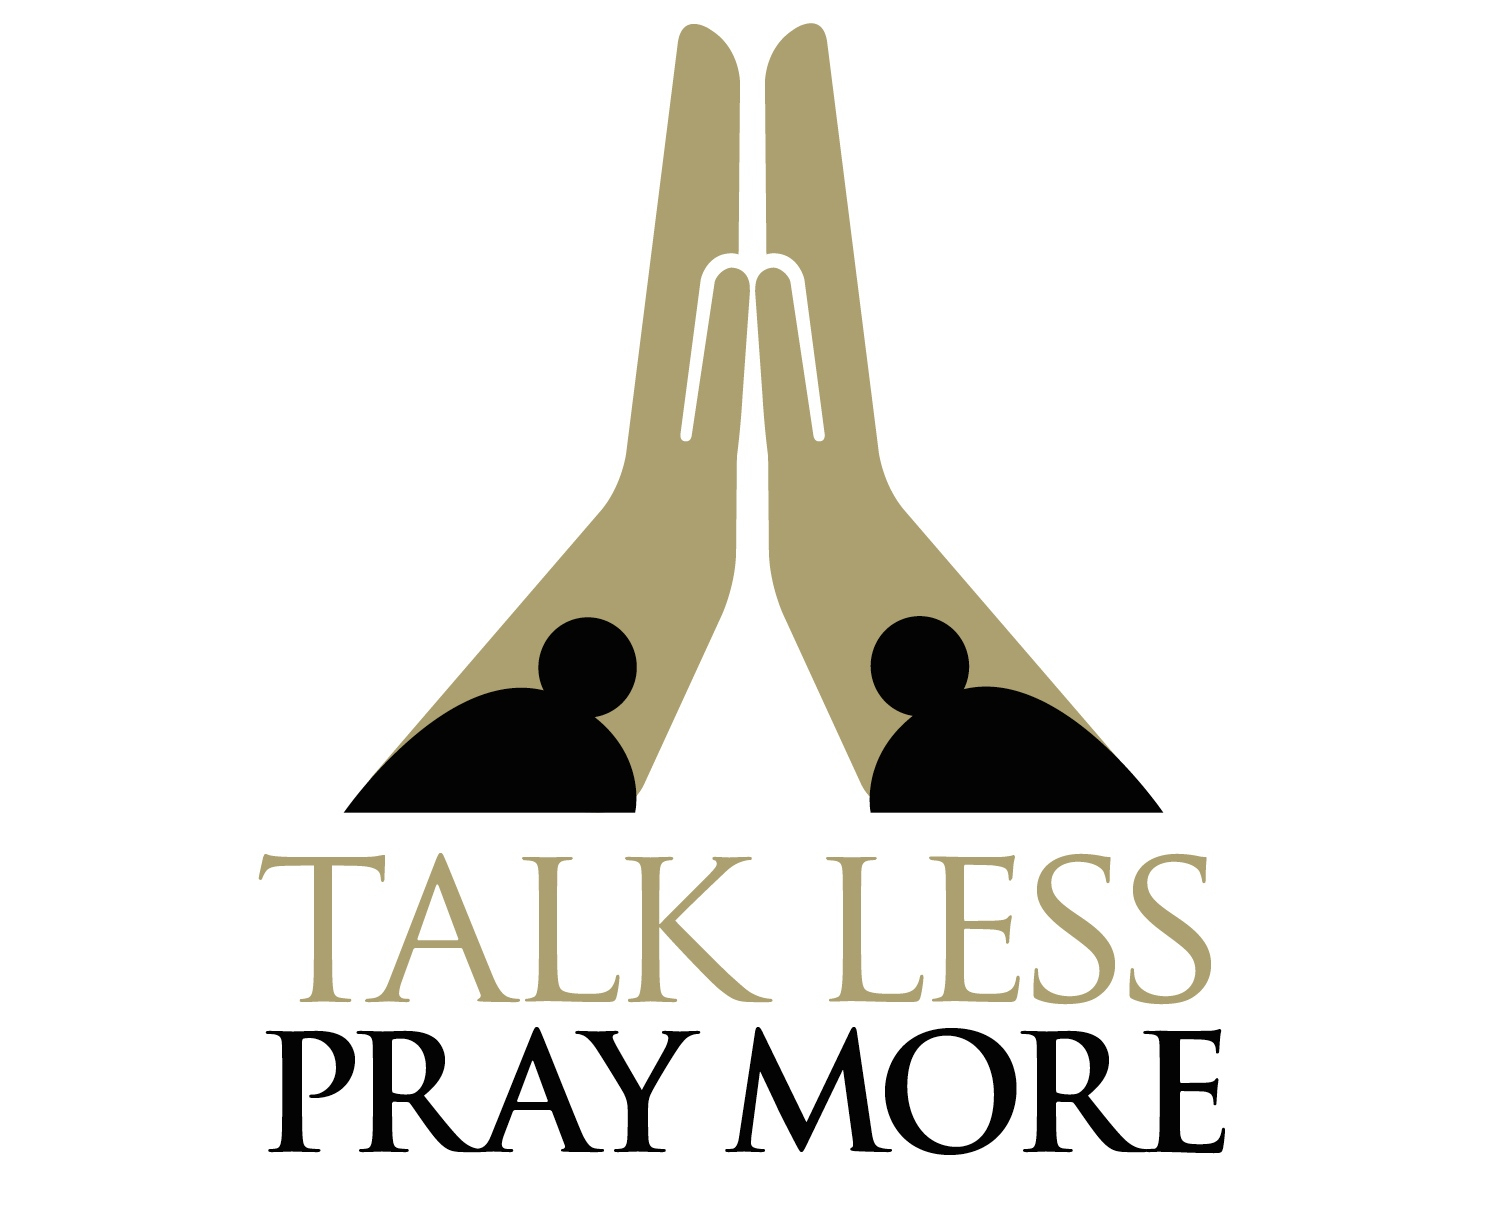 Blog Talk Less Pray More